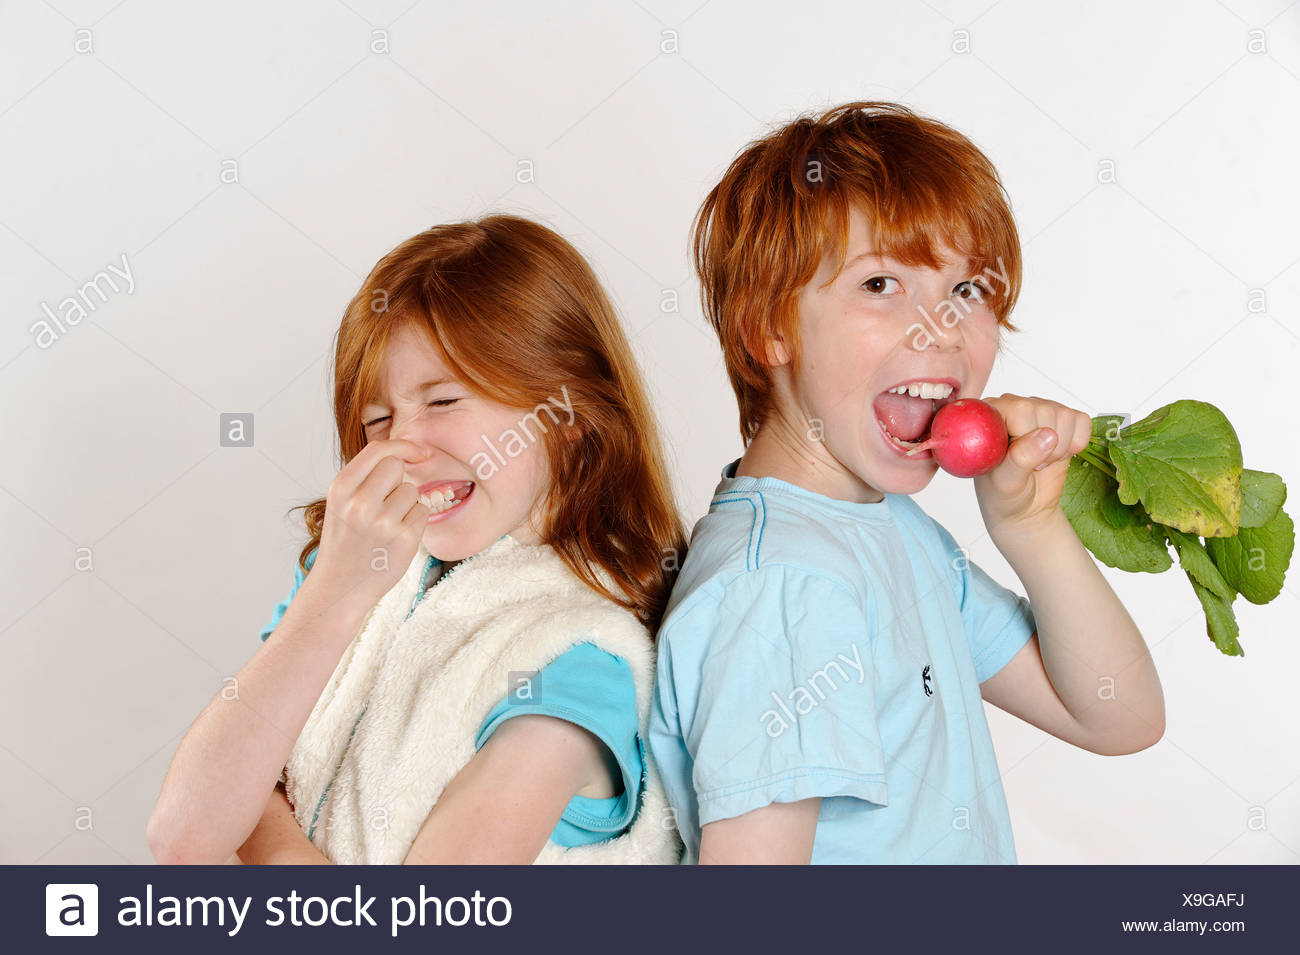 Boy eating radishes, girl rejecting raw food or vegetables - Stock Image